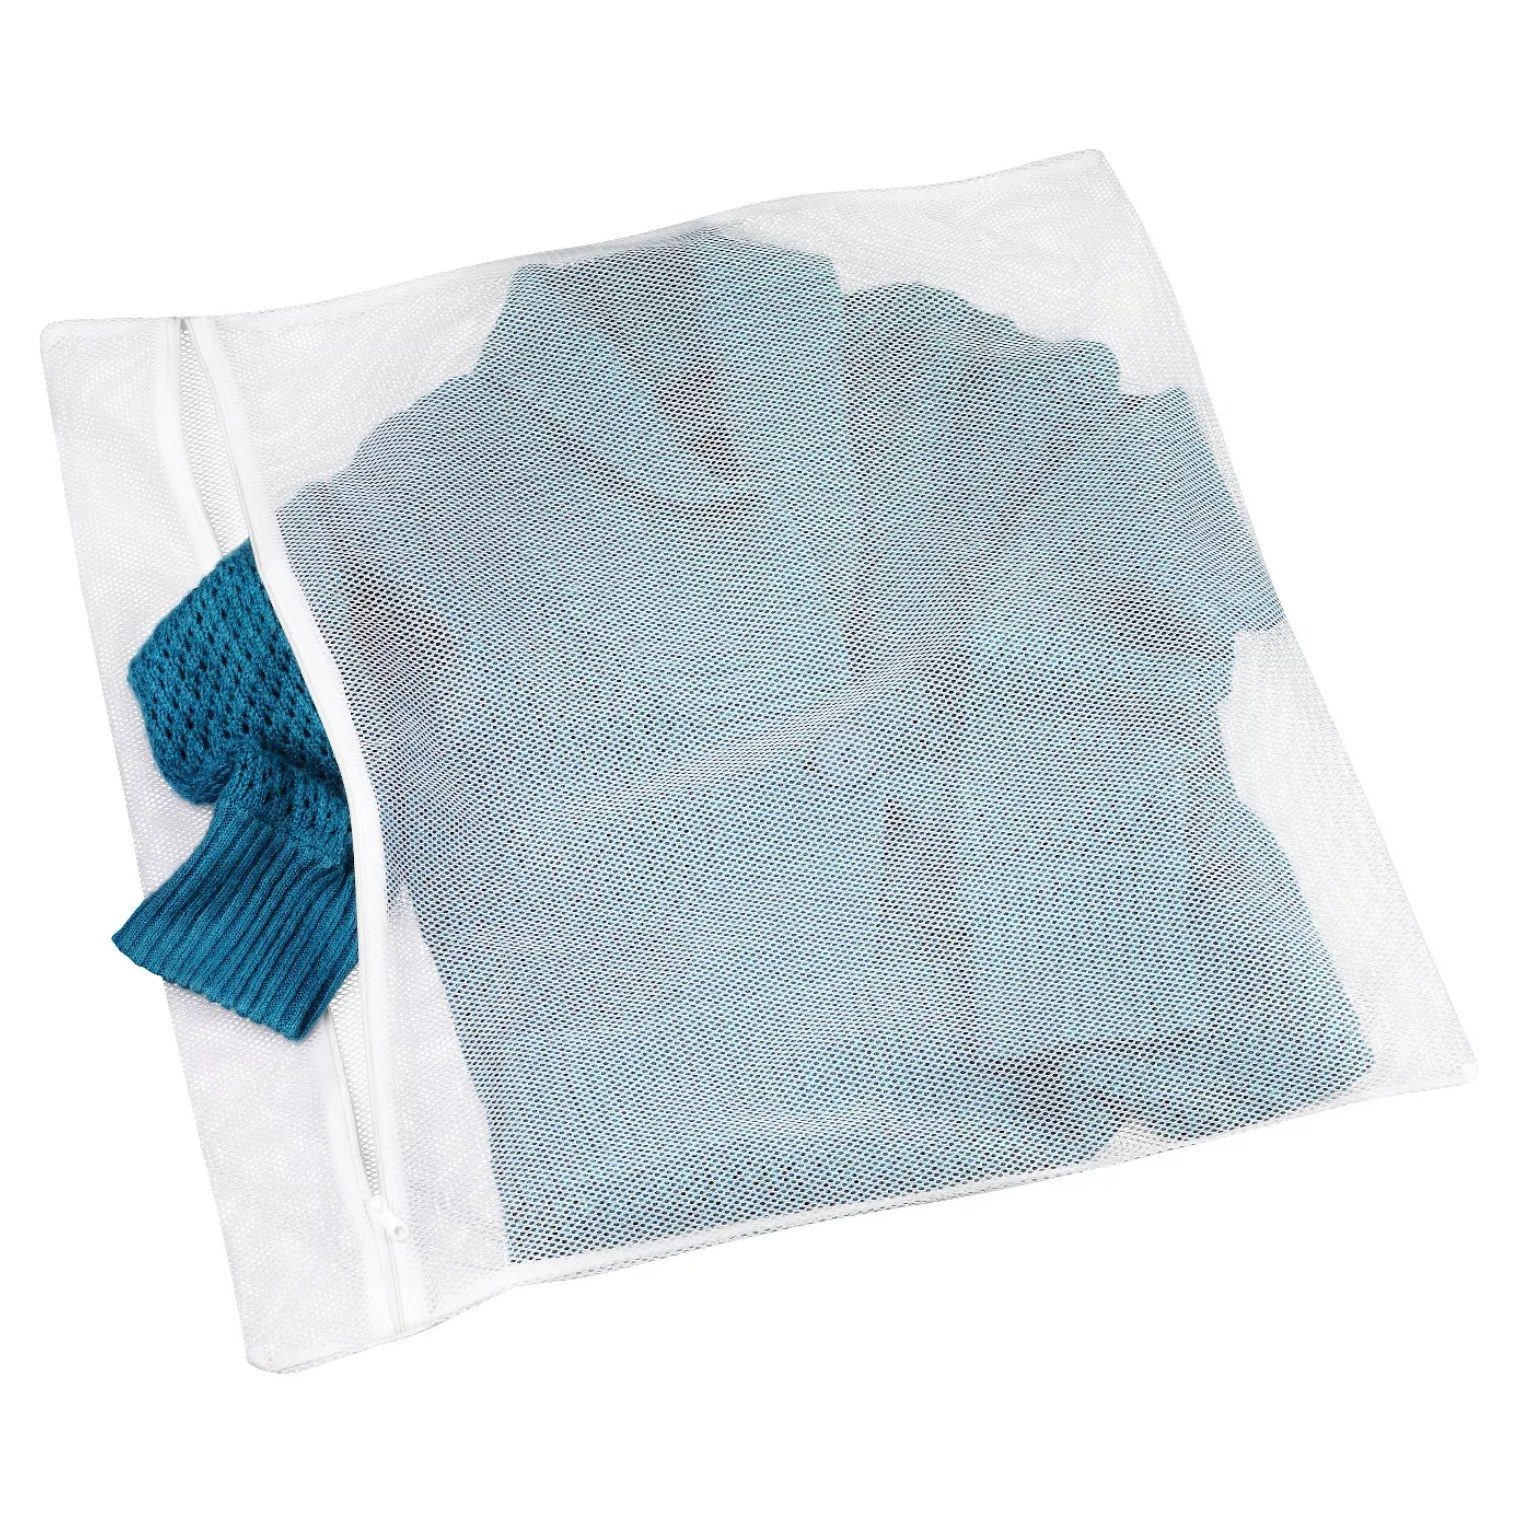 the mesh bag with a sweater in it